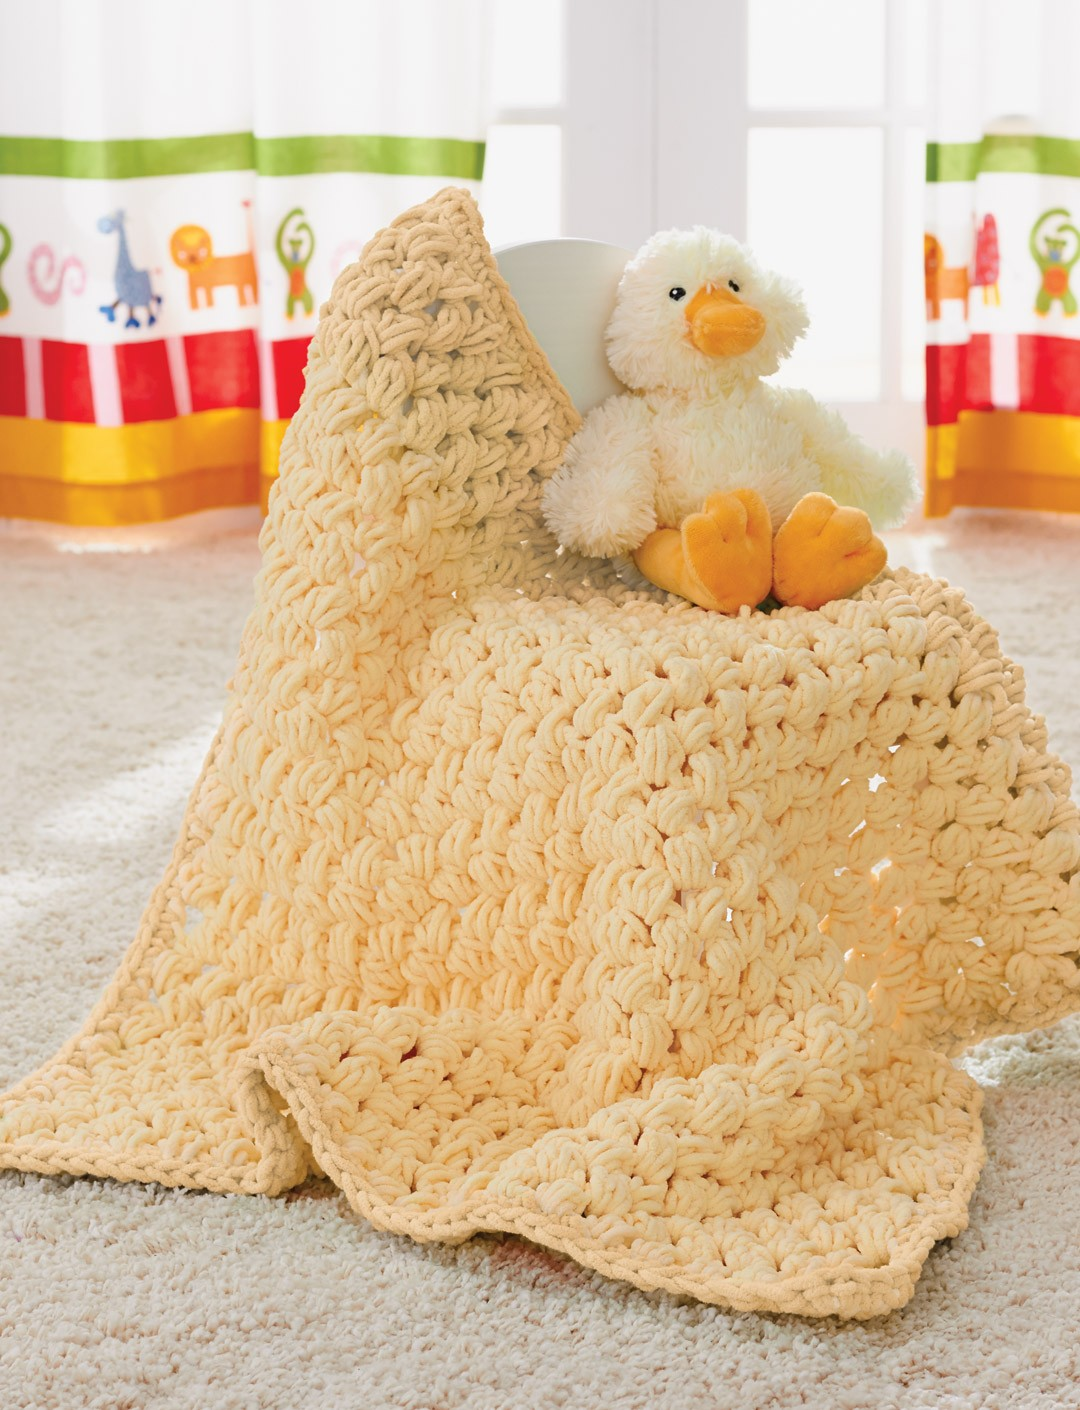 Bernat Puffy Baby Blanket, Crochet Pattern Yarnspirations